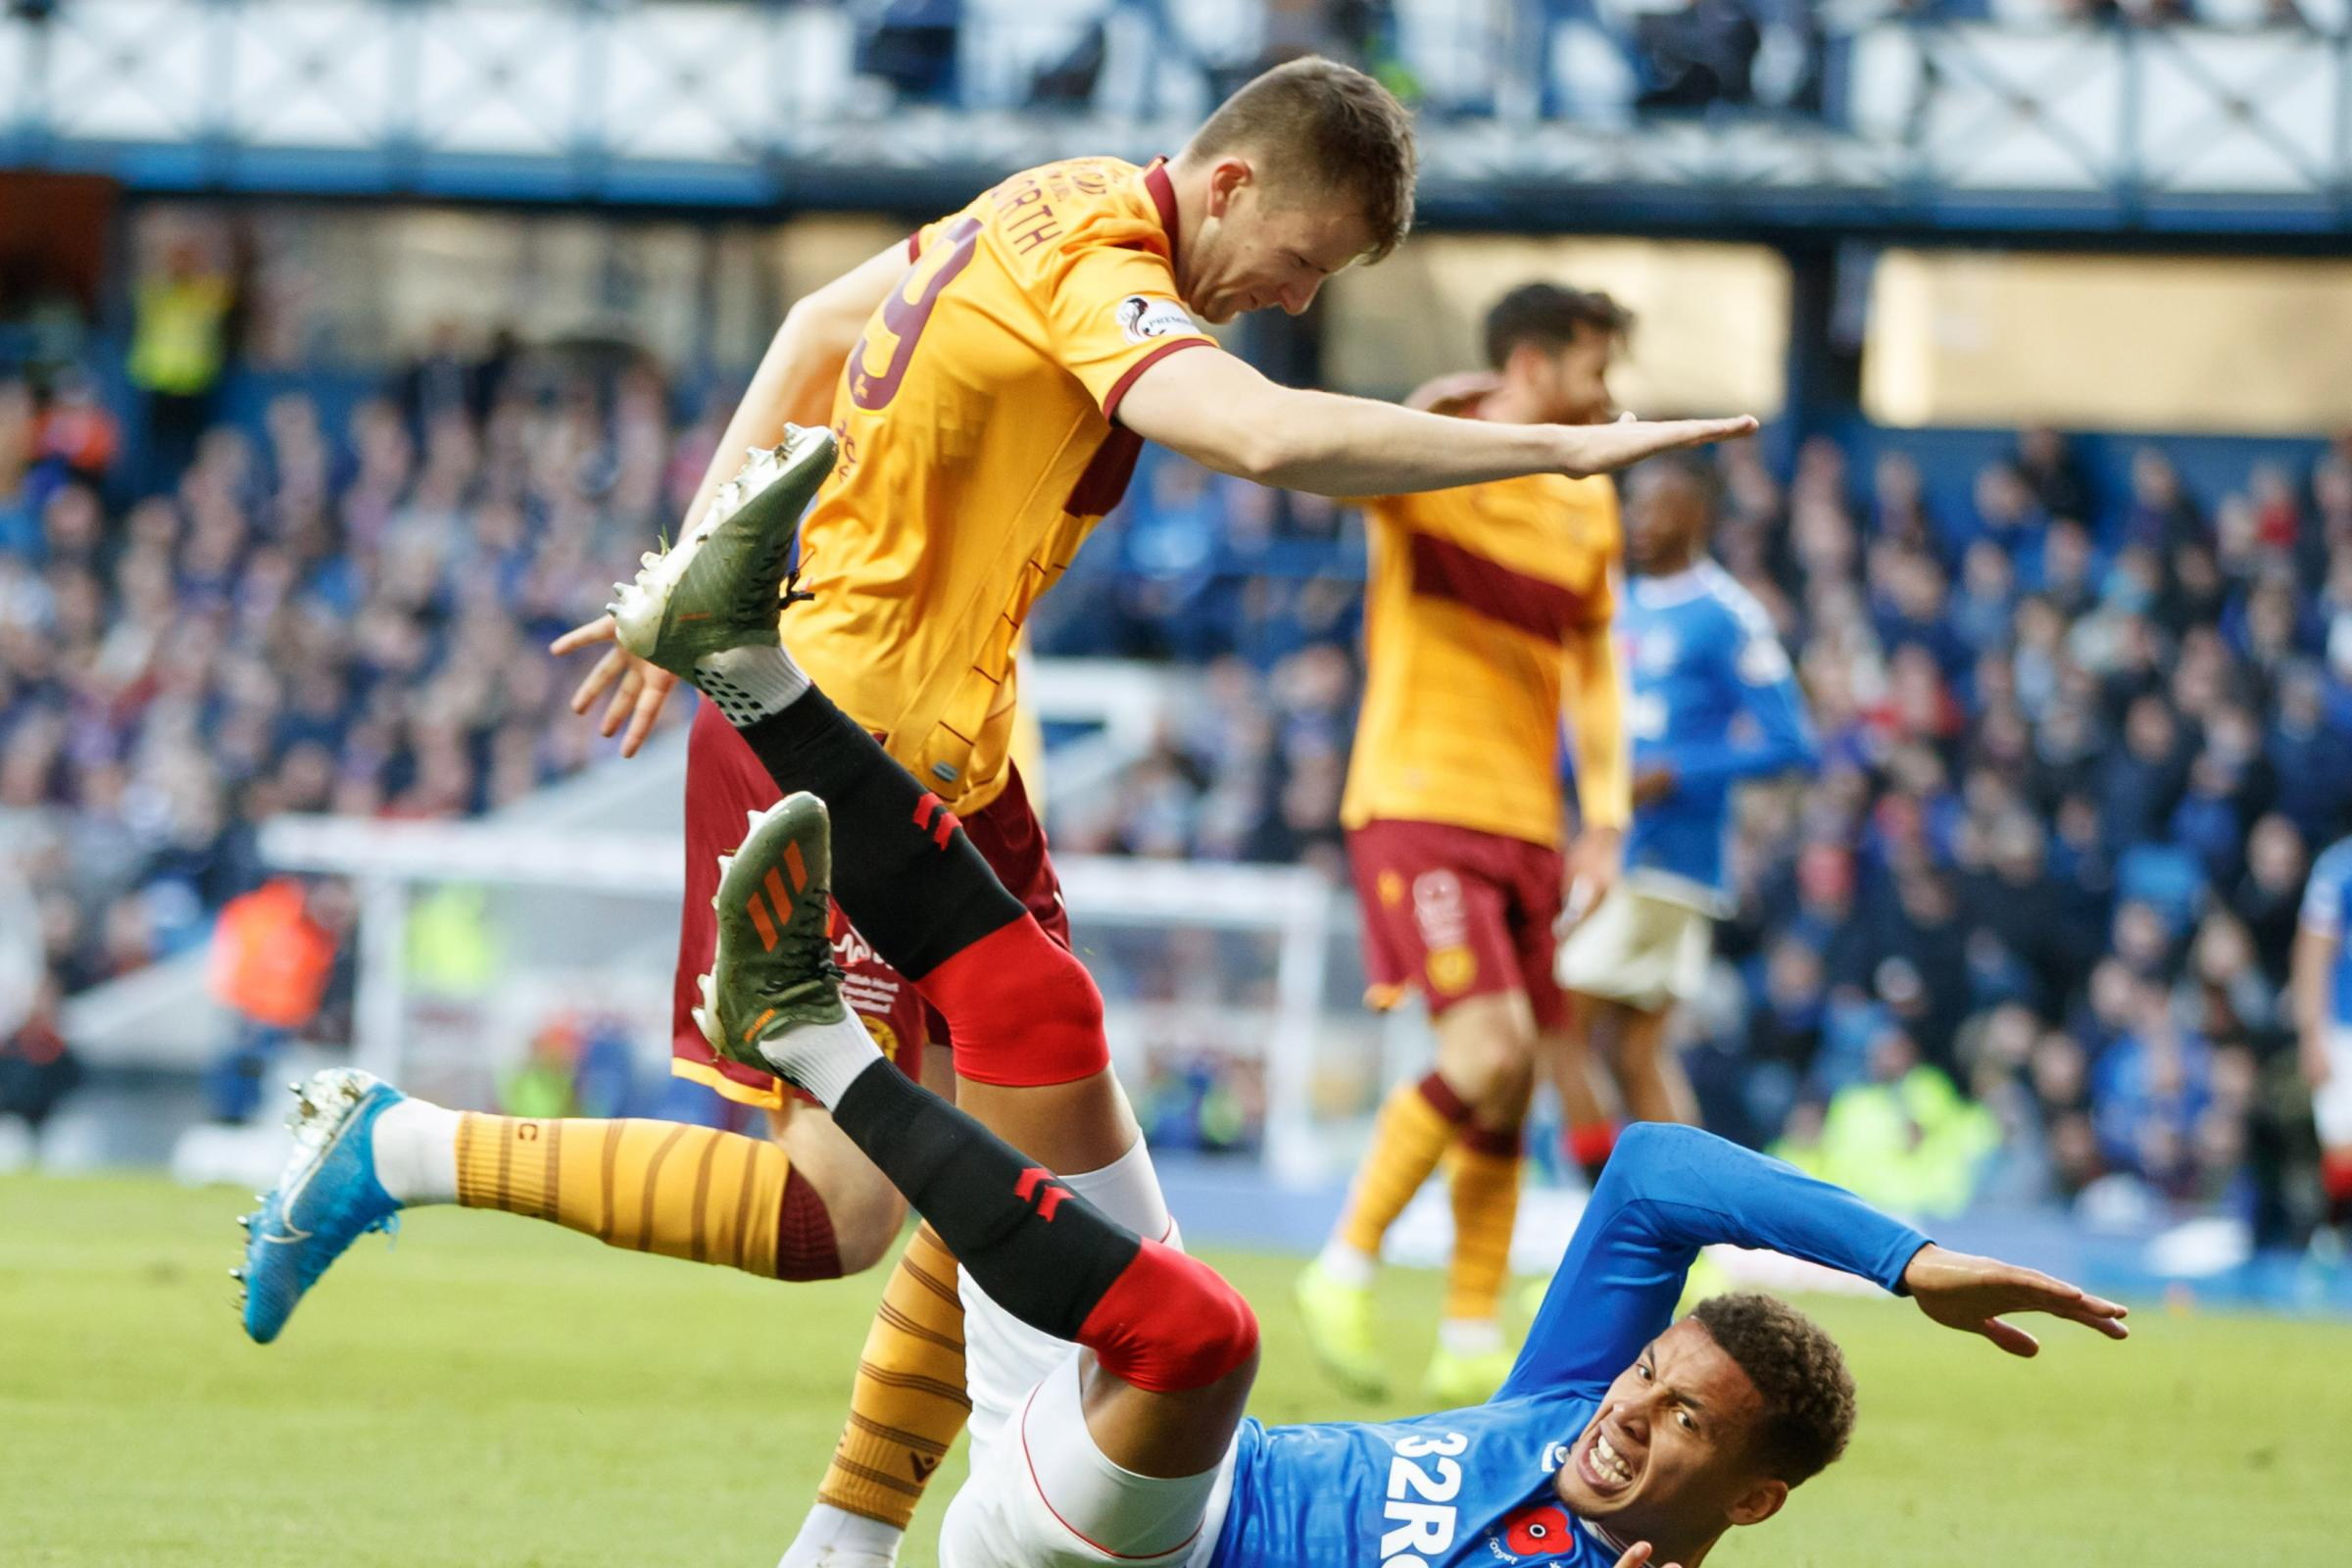 Liam Polworth was pleased to hear Steven Gerrard's words of praise after Motherwell's defeat to Rangers at Ibrox